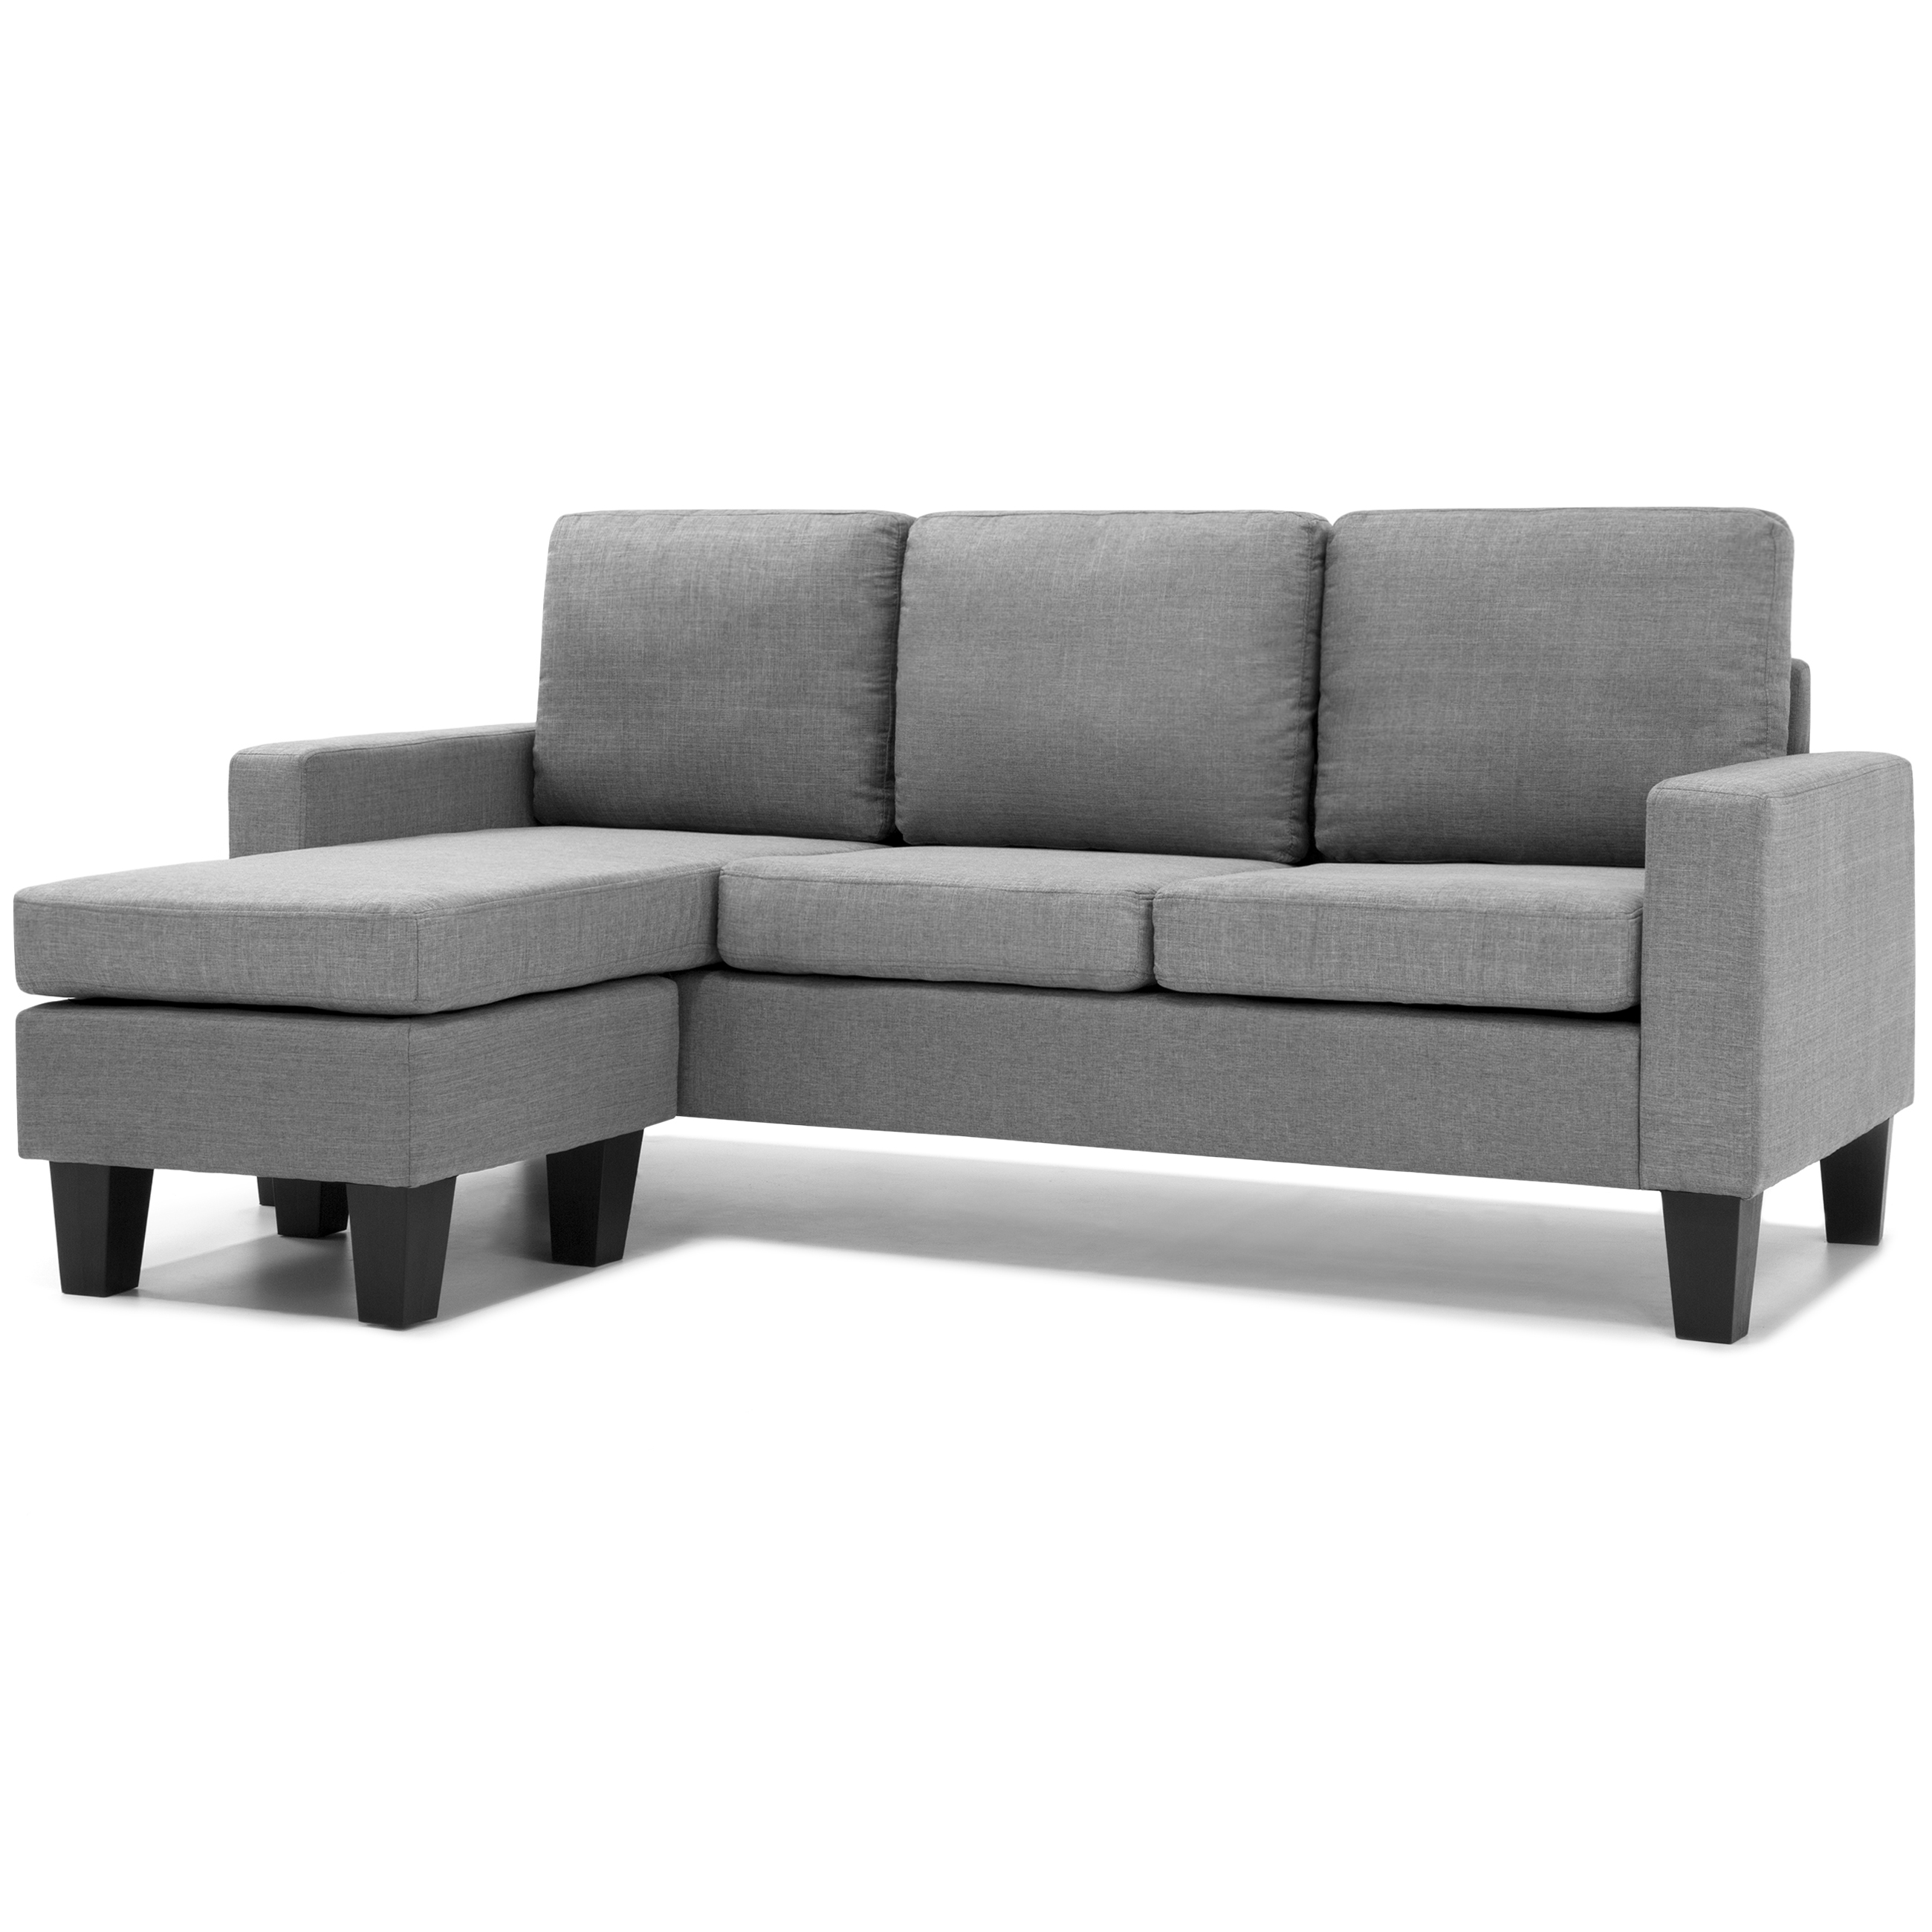 Sectional Sofa Couch Reversible Chaise Ottoman Furniture: Home Microfiber L-Shape Sectional Sofa Couch W/ Reversible